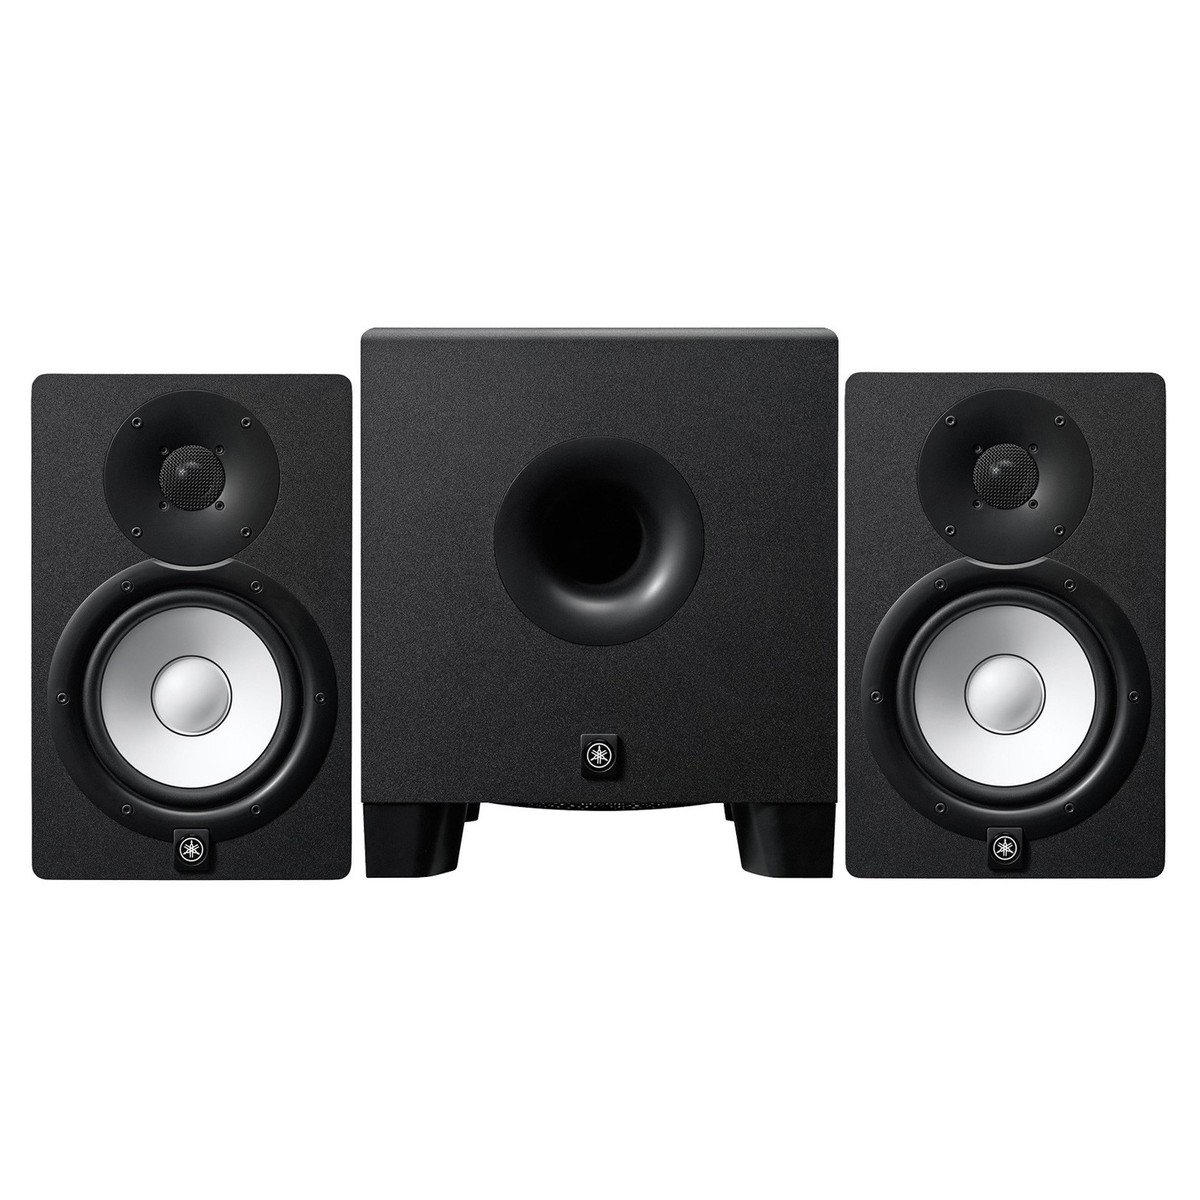 yamaha hs7 active studio monitors with hs8 powered. Black Bedroom Furniture Sets. Home Design Ideas